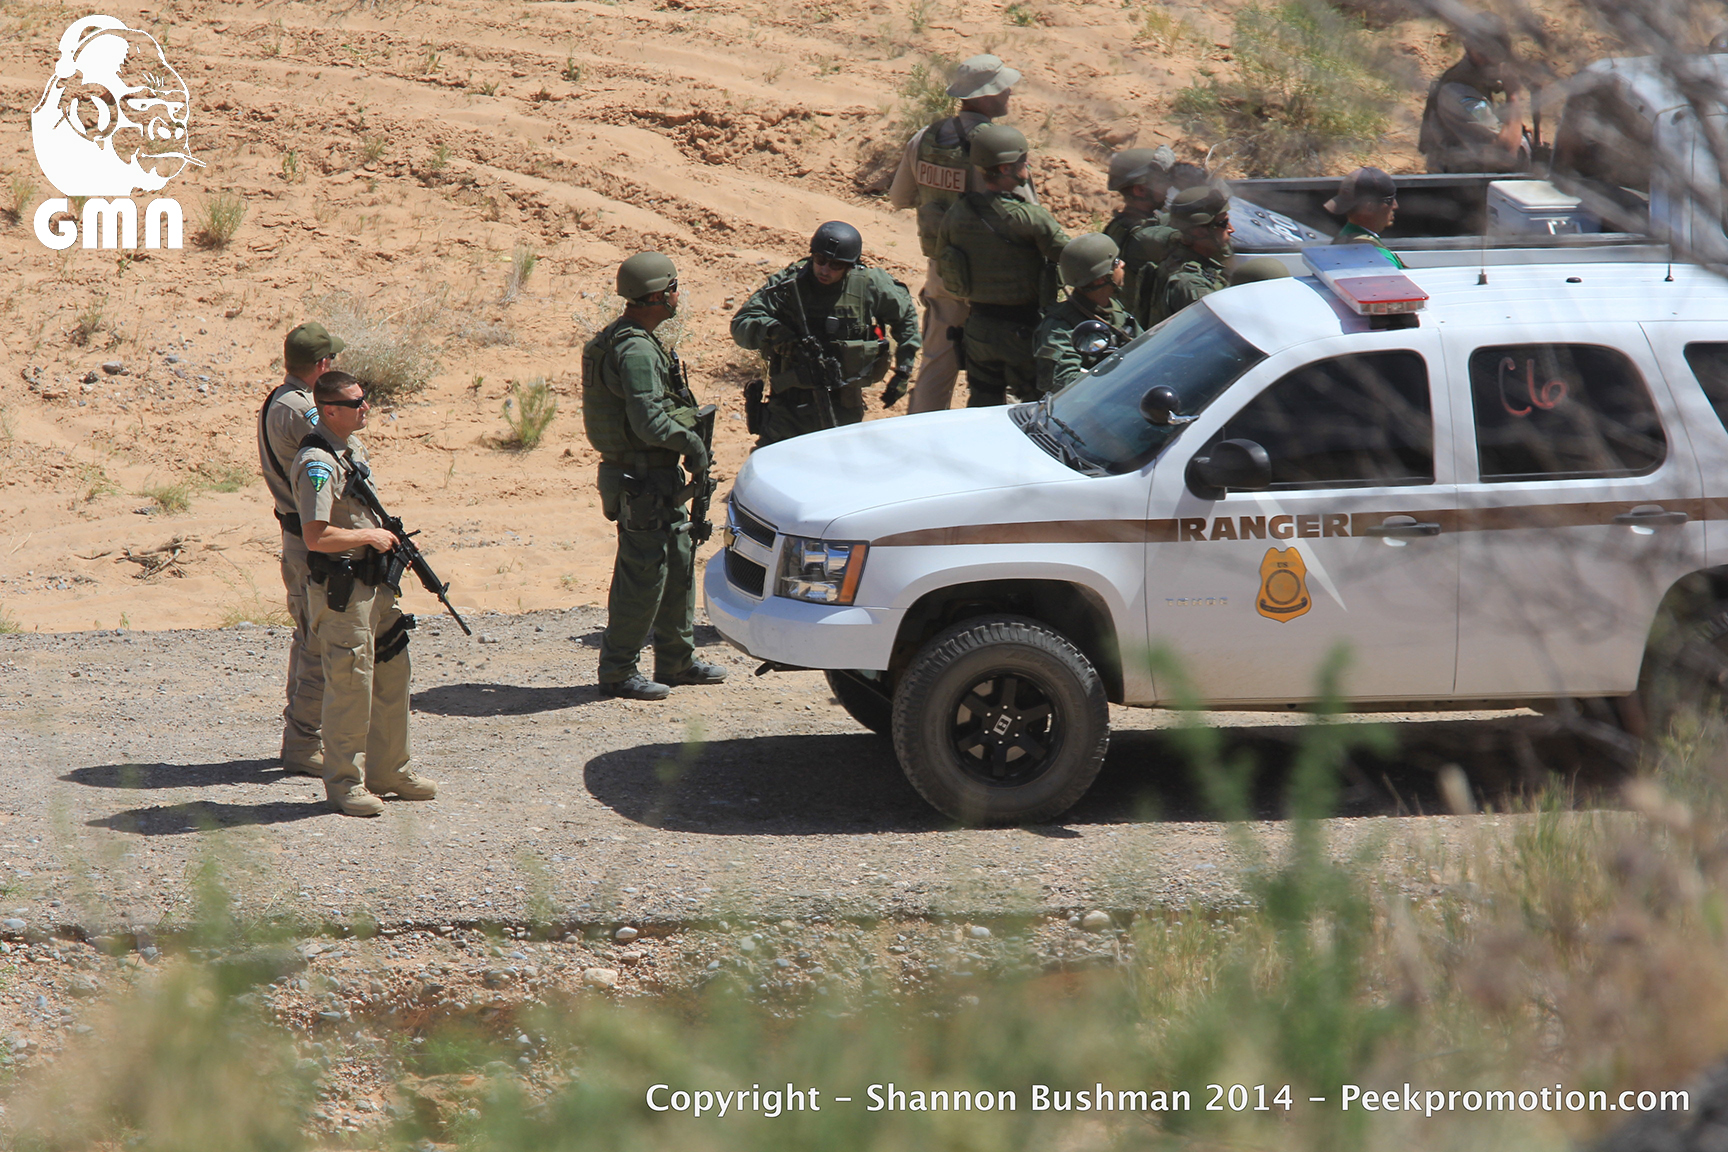 21WIREg-Bundy-Fed-Standoff-April-12-2014-Copyright-GMN